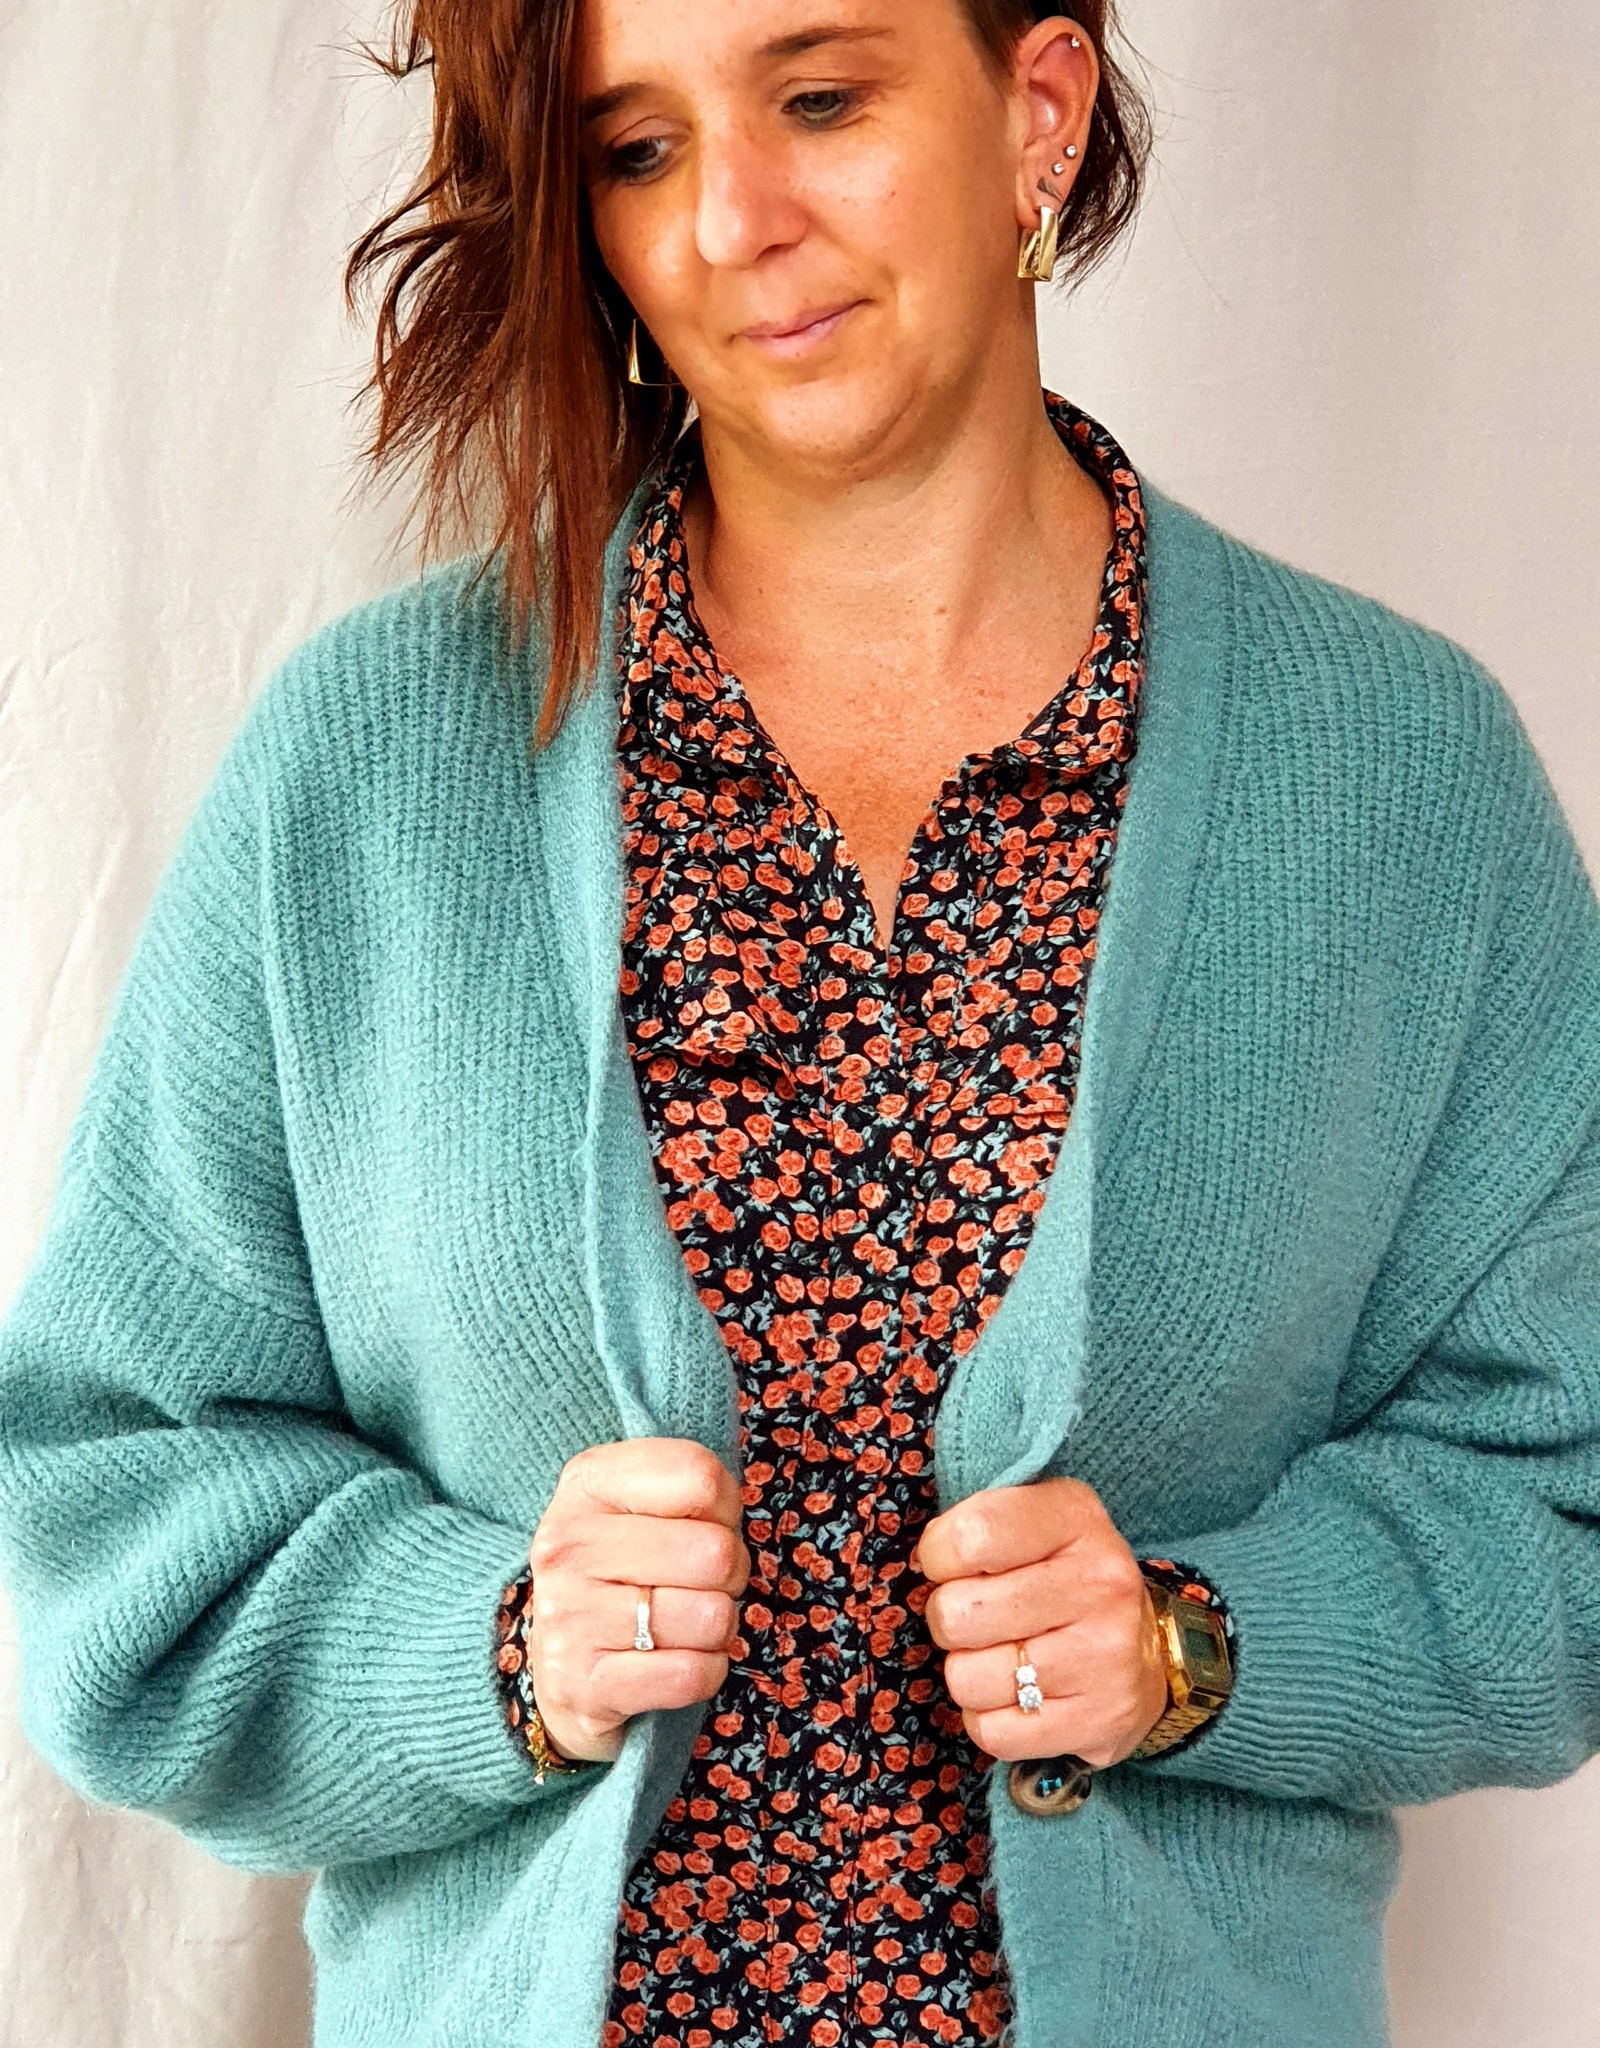 Mika Elles Old green knitted cardigan